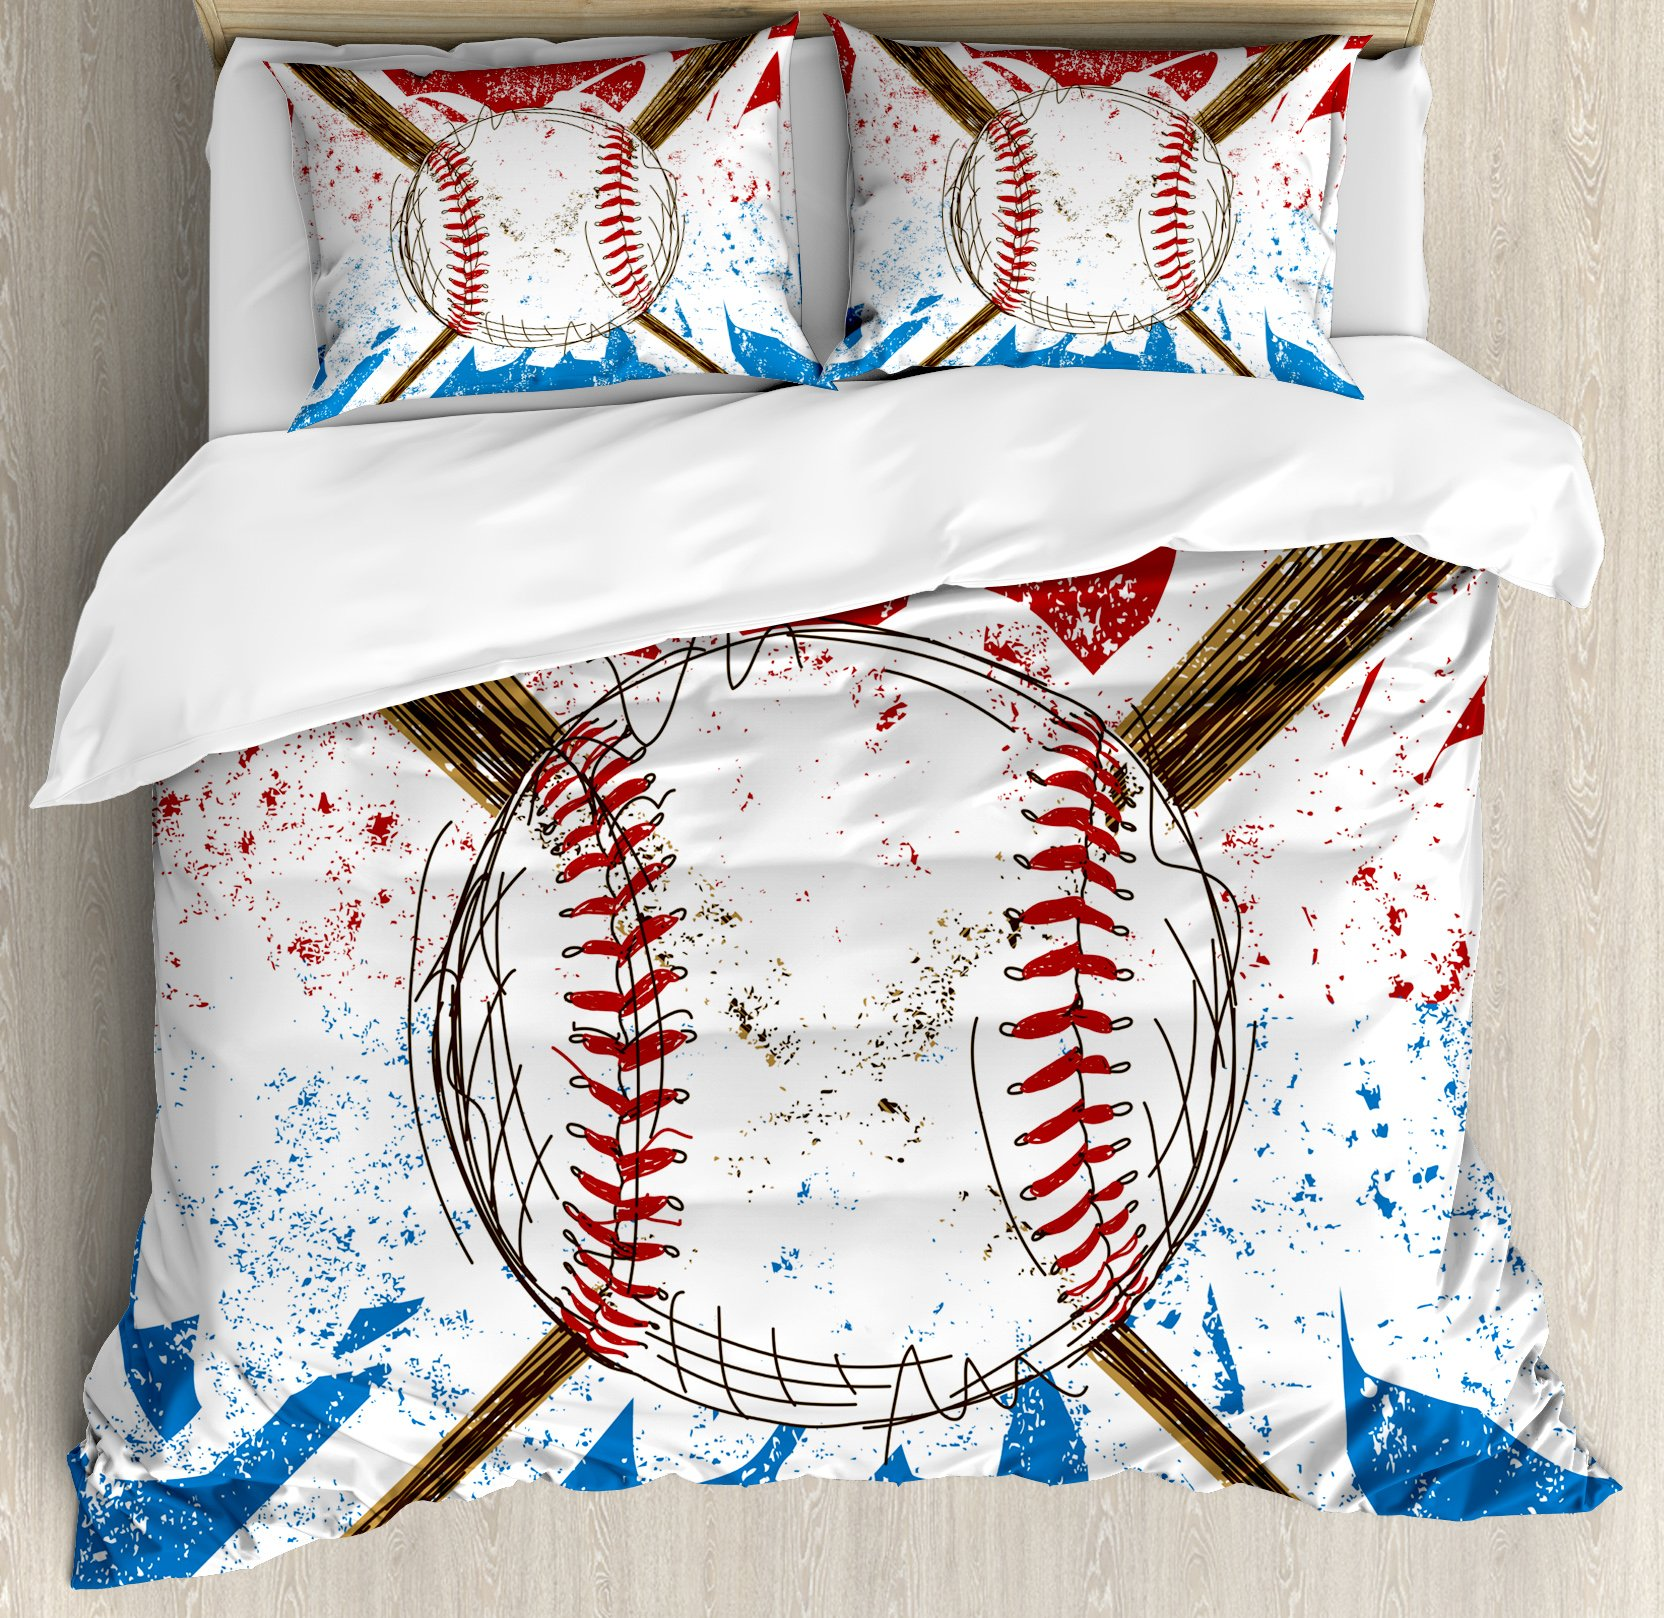 Boy's Room Queen Size Duvet Cover Set by Lunarable, Hand Drawn Baseball Bat and Ball on Grunge Colored Artistic Background, Decorative 3 Piece Bedding Set with 2 Pillow Shams, Ruby Blue Brown